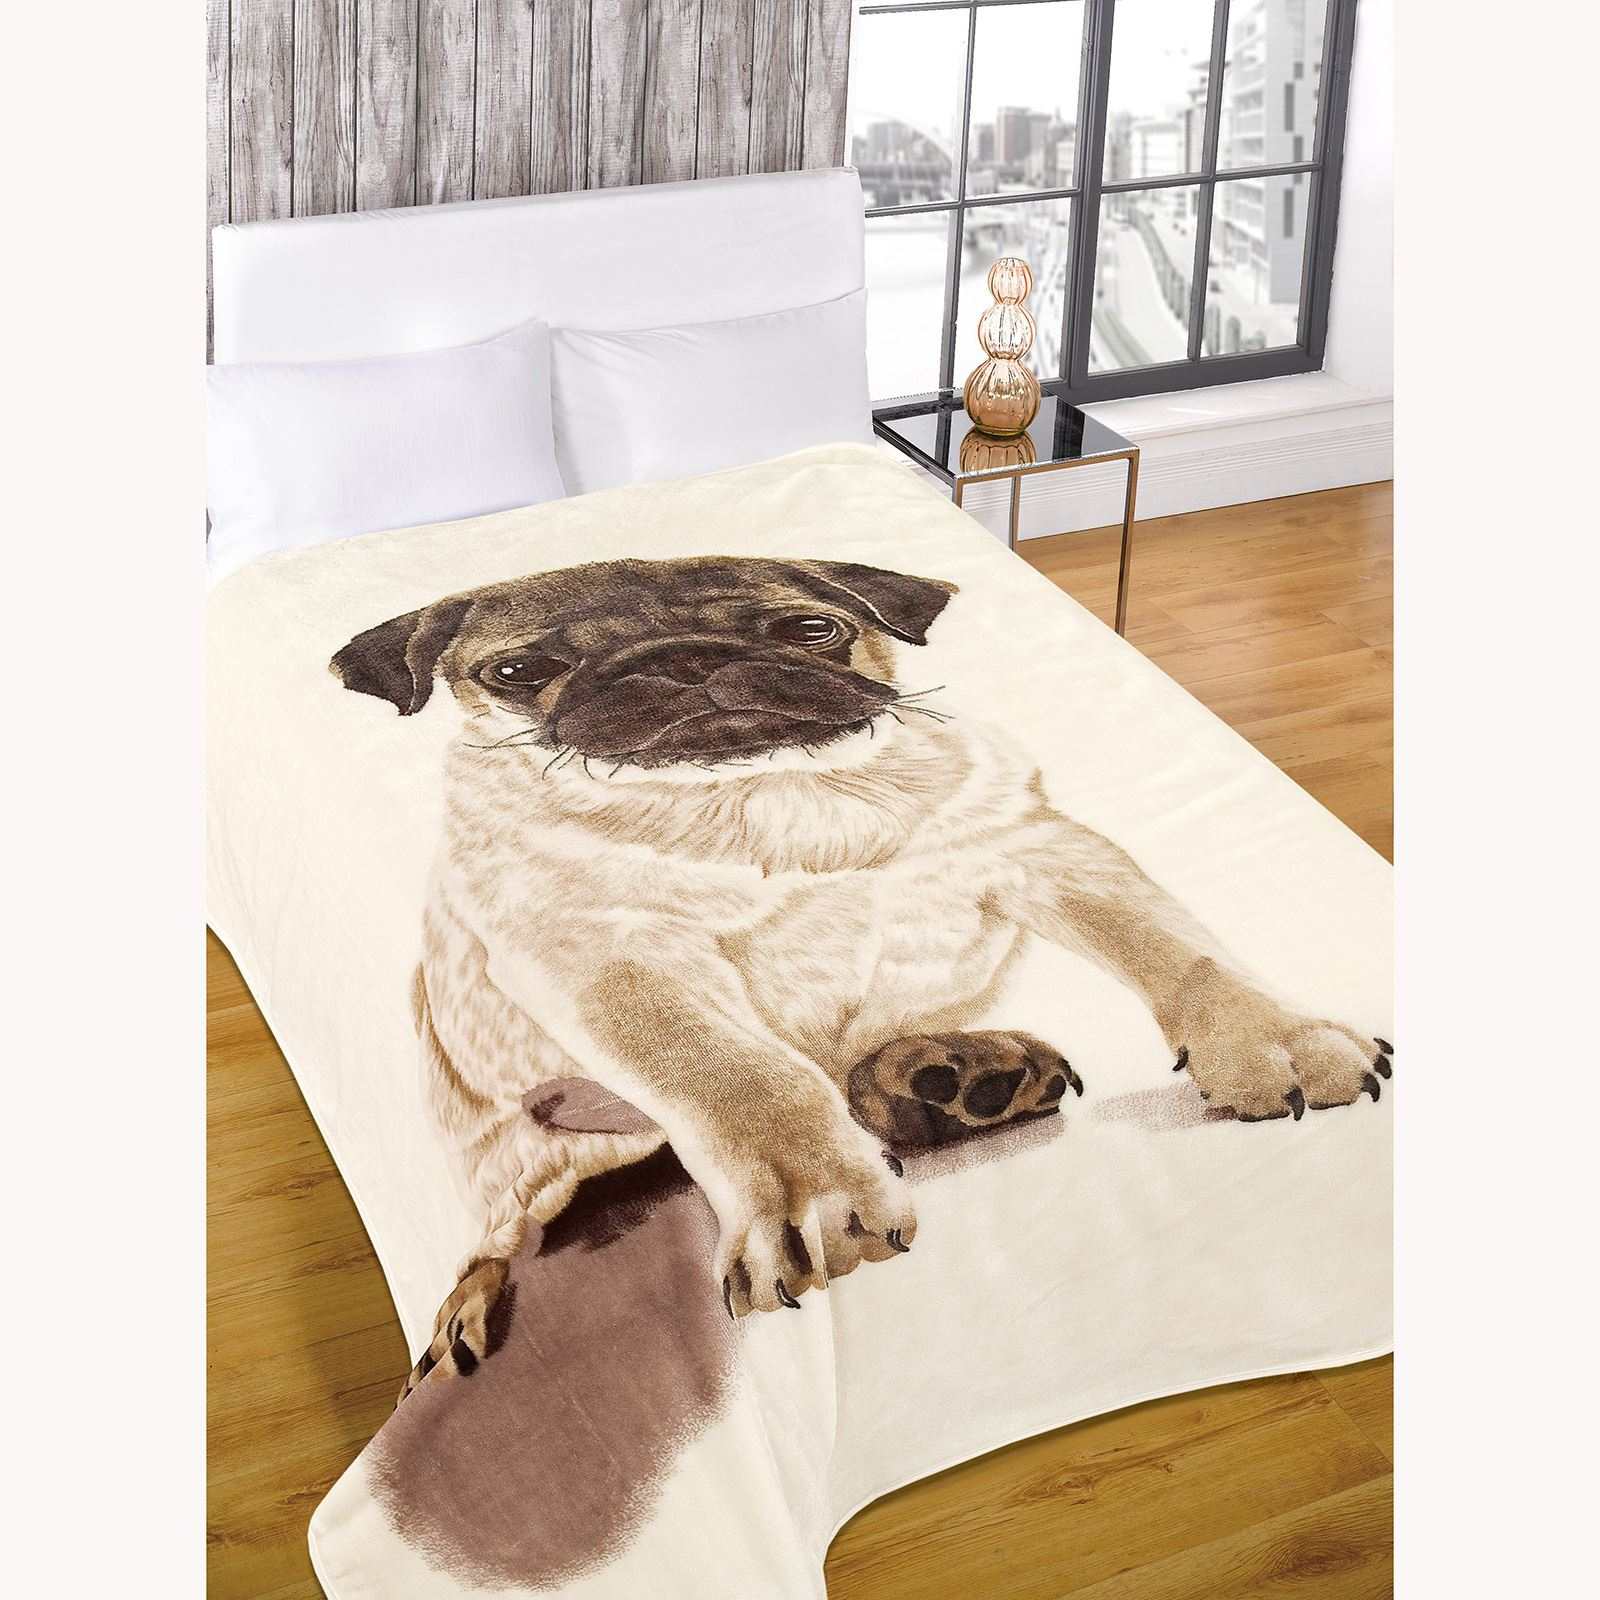 Details about ADULT THROW BLANKETS FAUX FUR PUG AND VOLKSWAGEN RETRO  CAMPERVAN SUPER SOFT NEW 4dedaf7be